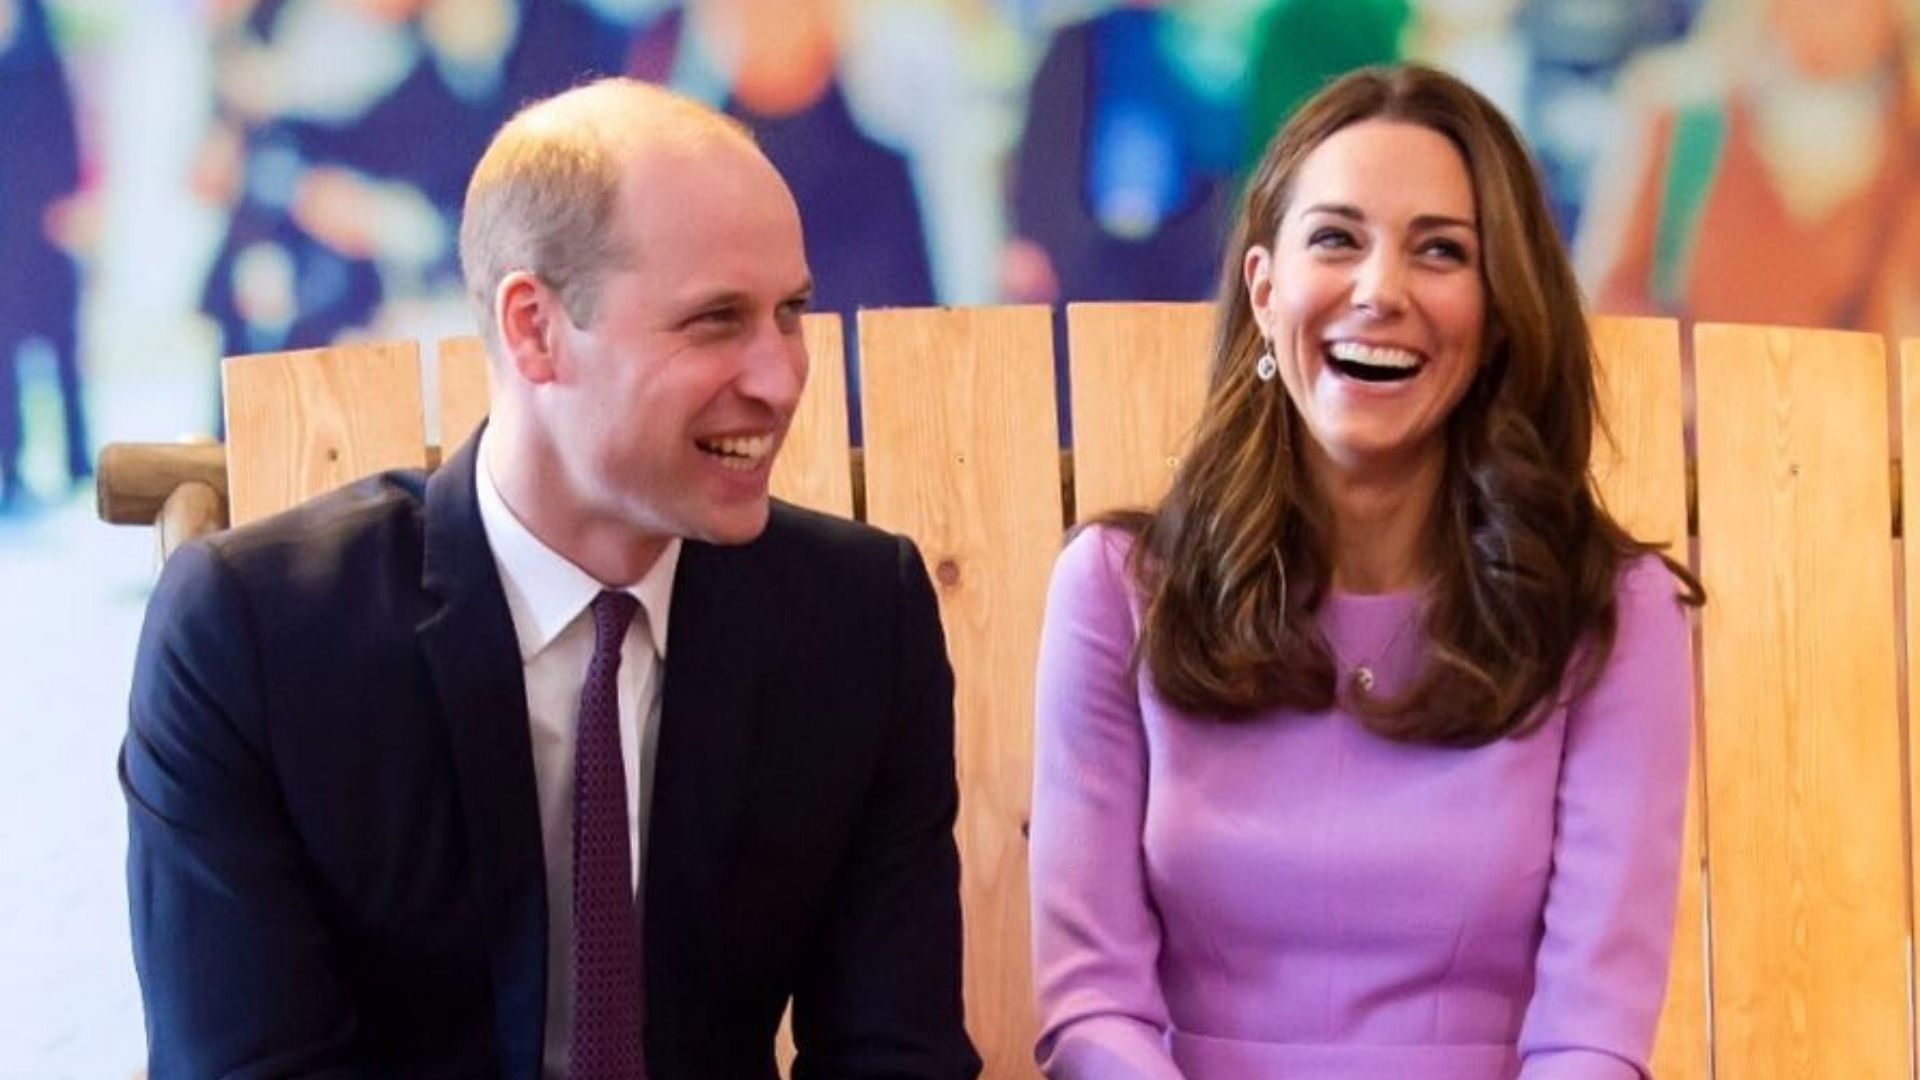 Kate Middleton And Prince William Made A Marriage Pact At University